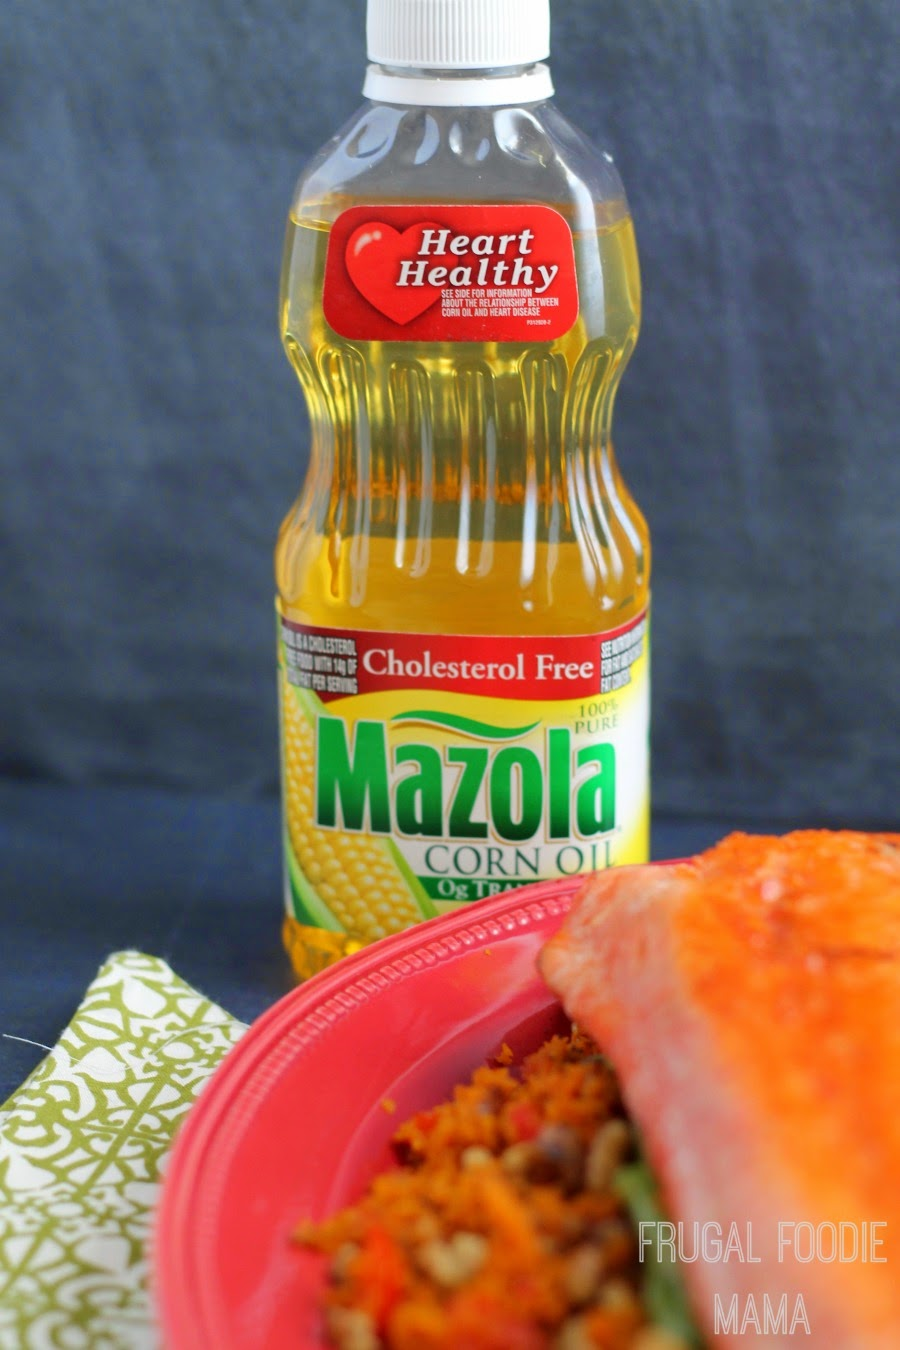 Mazola Corn Oil is a heart healthier option than many other, high saturated fat alternatives.